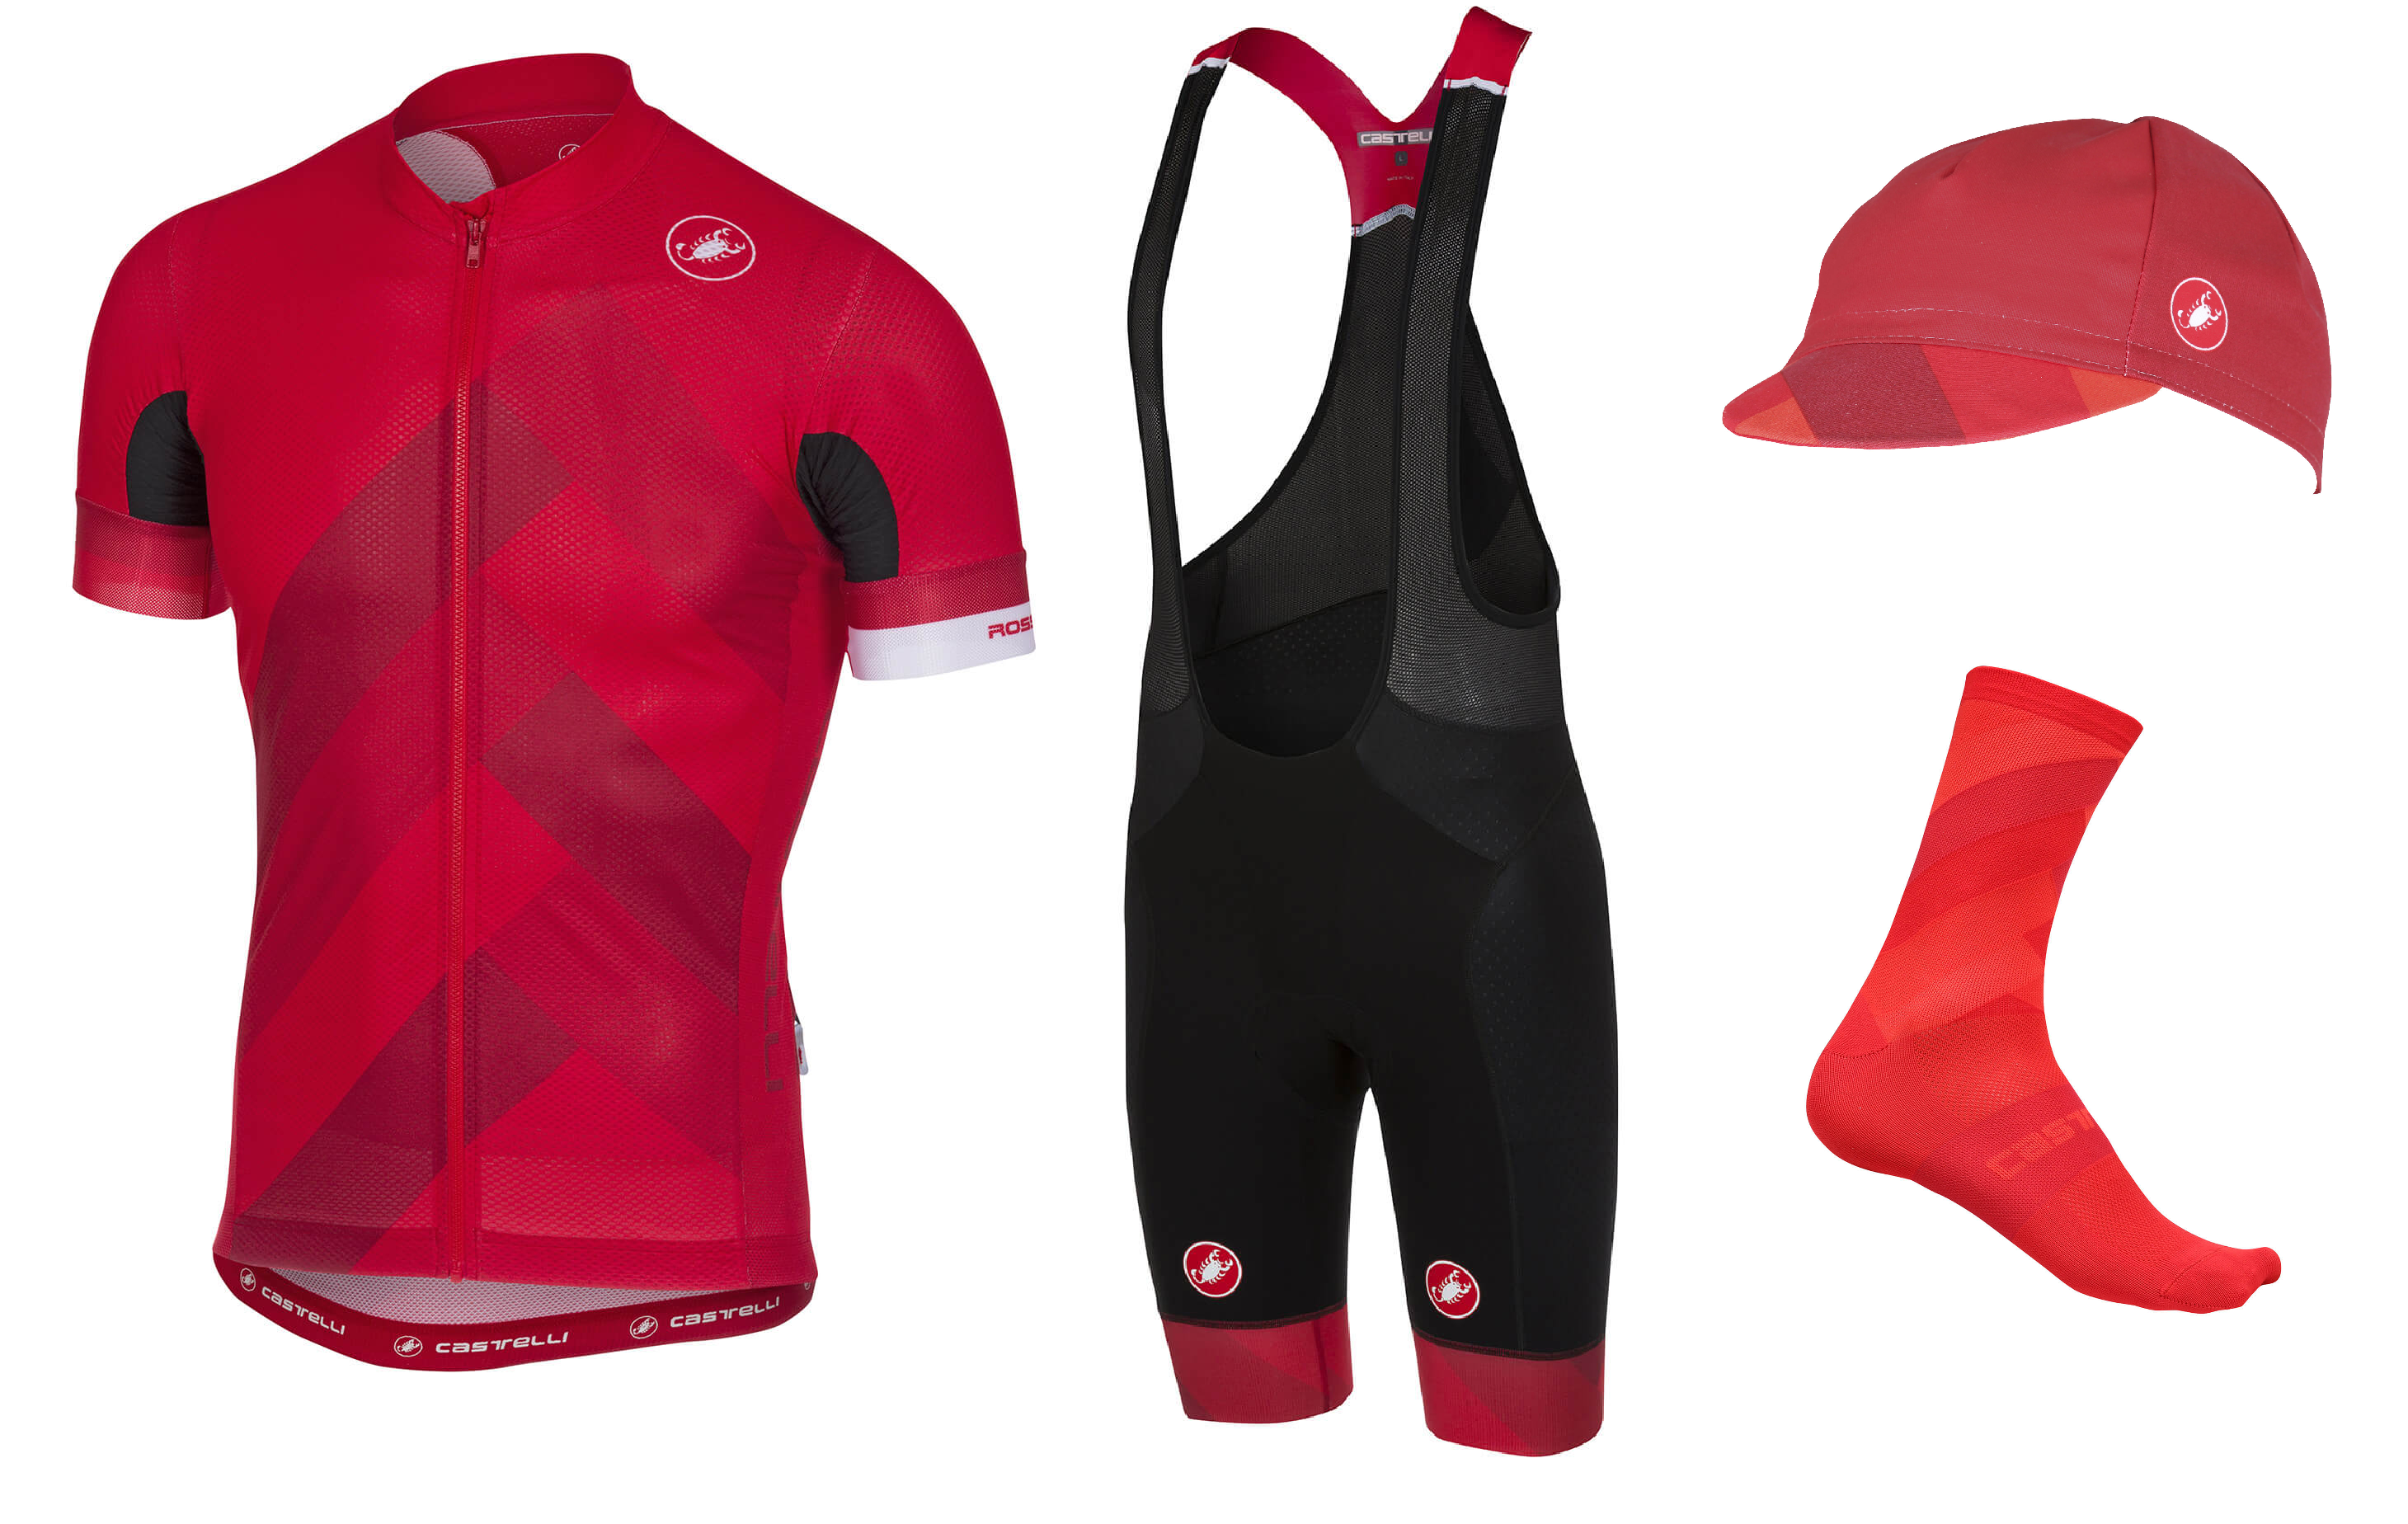 the castelli Free AR 4.1 range in red and black.